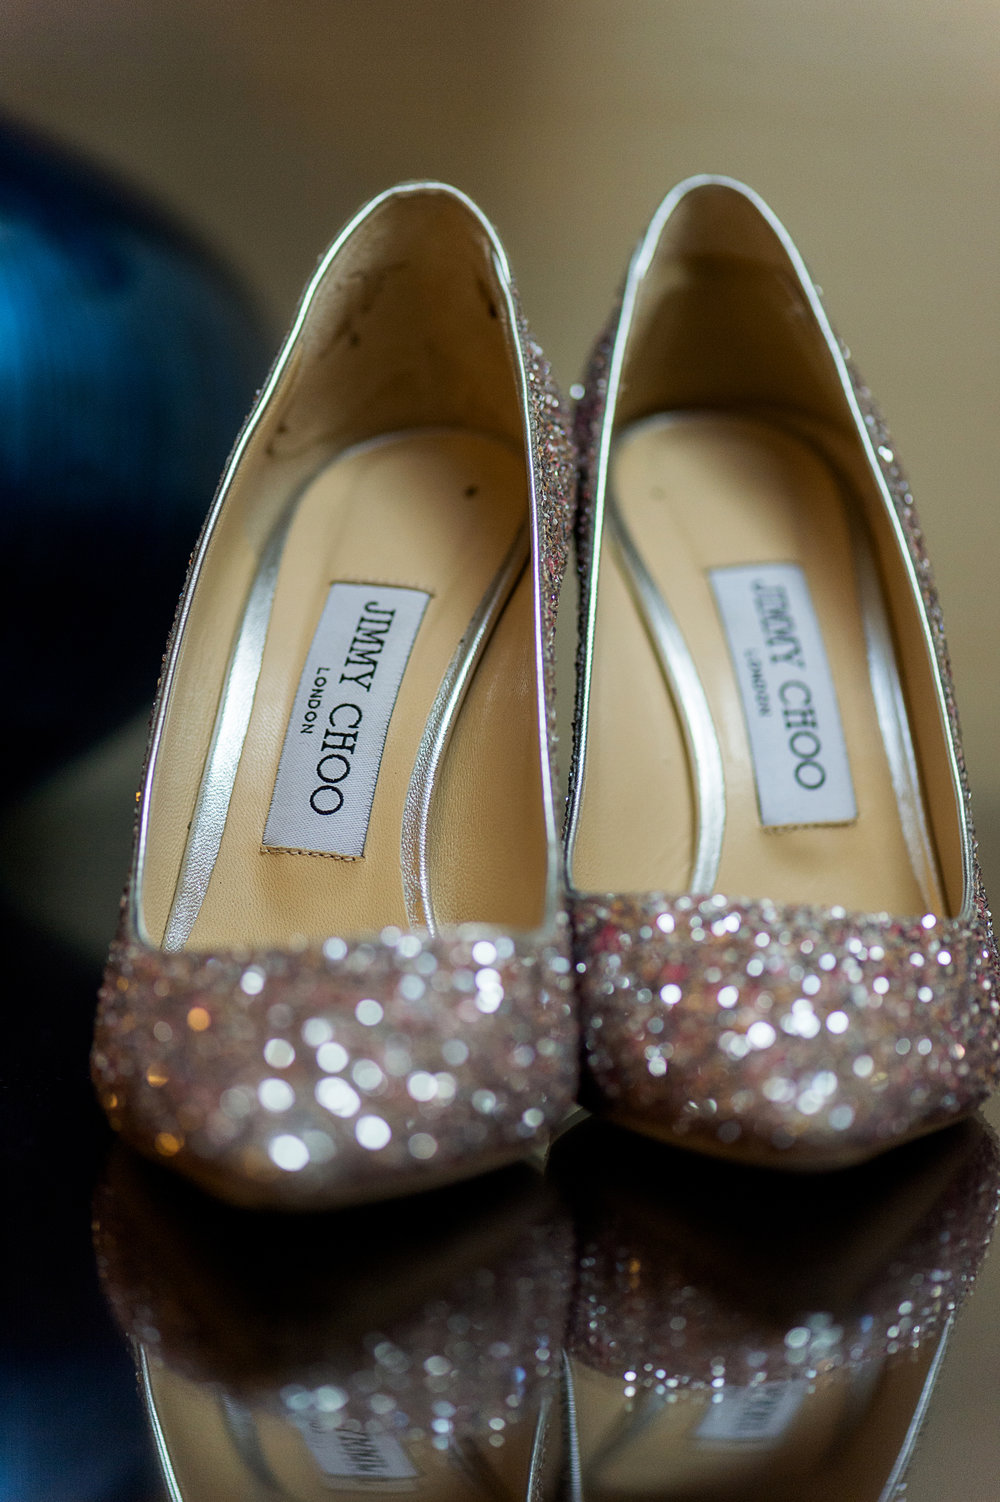 Sparkling wedding shoes by Jimmy Choo.  Las Vegas Wedding Planner Andrea Eppolito.  Photo by Studio JK.